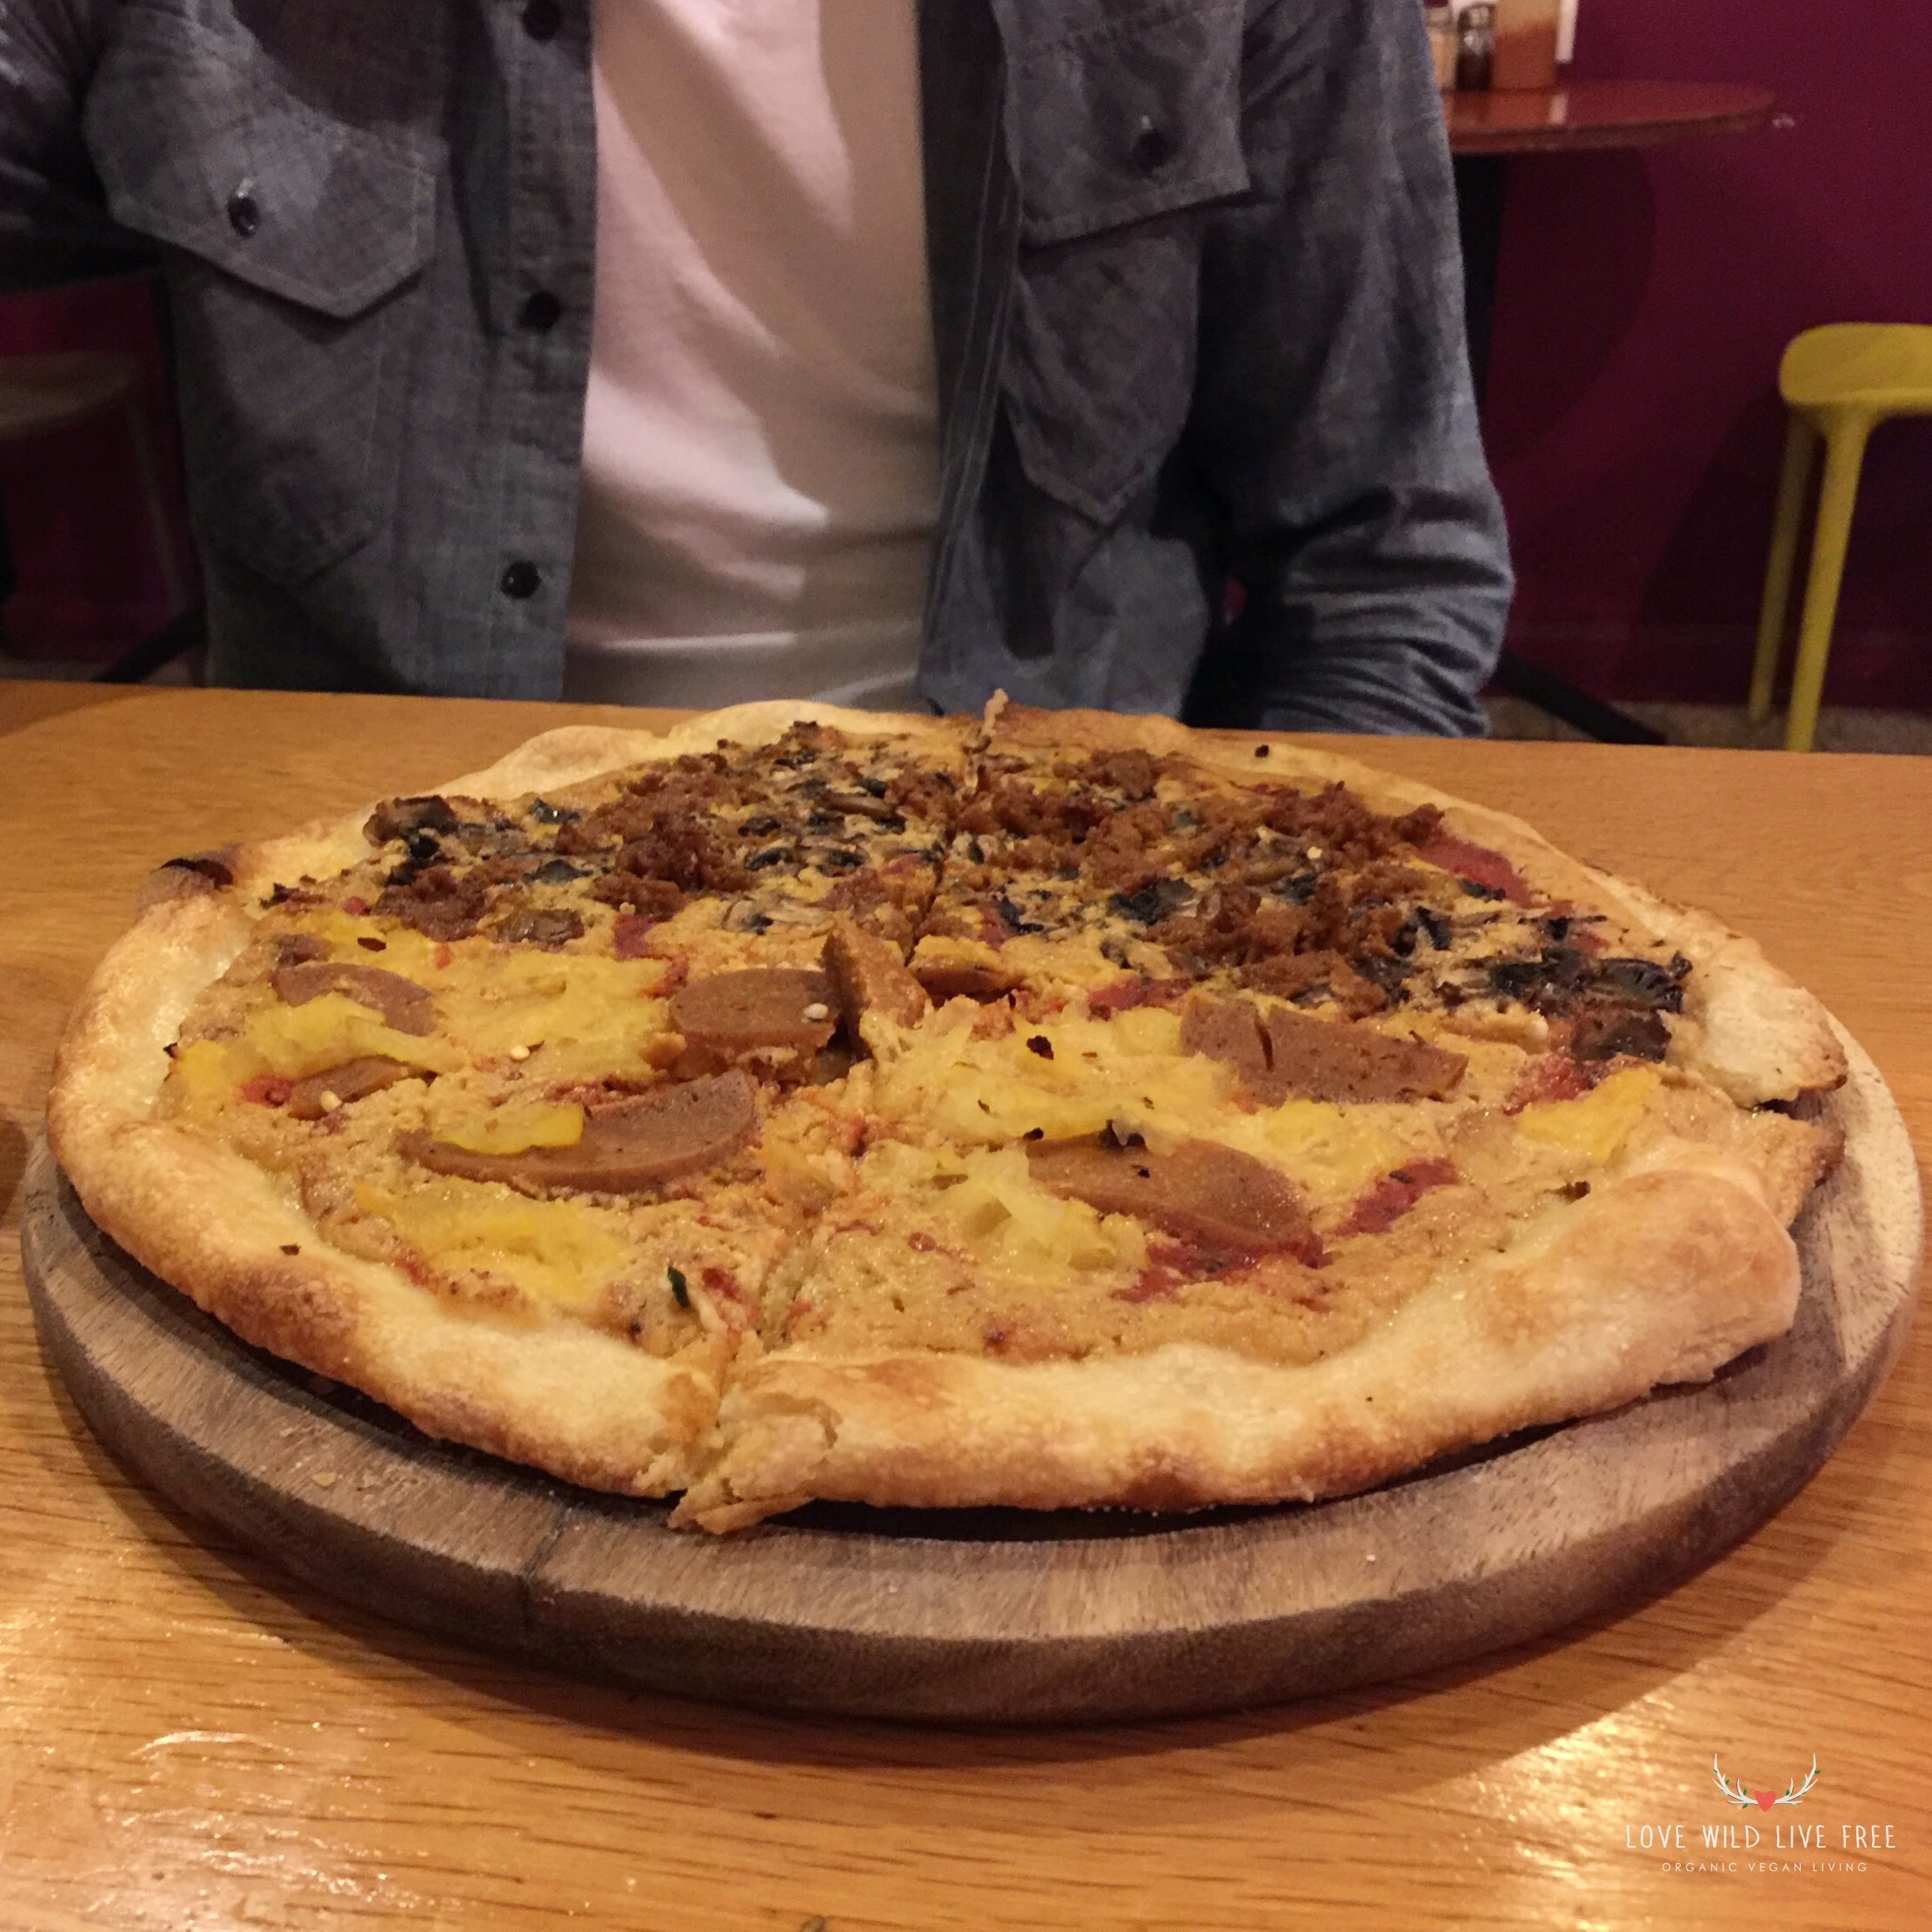 We ordered a personal pizza with house-made mozzarella cheese, and topped one half with pineapple and handmade pepperoni, and the other half with crumbled seitan and mushrooms.